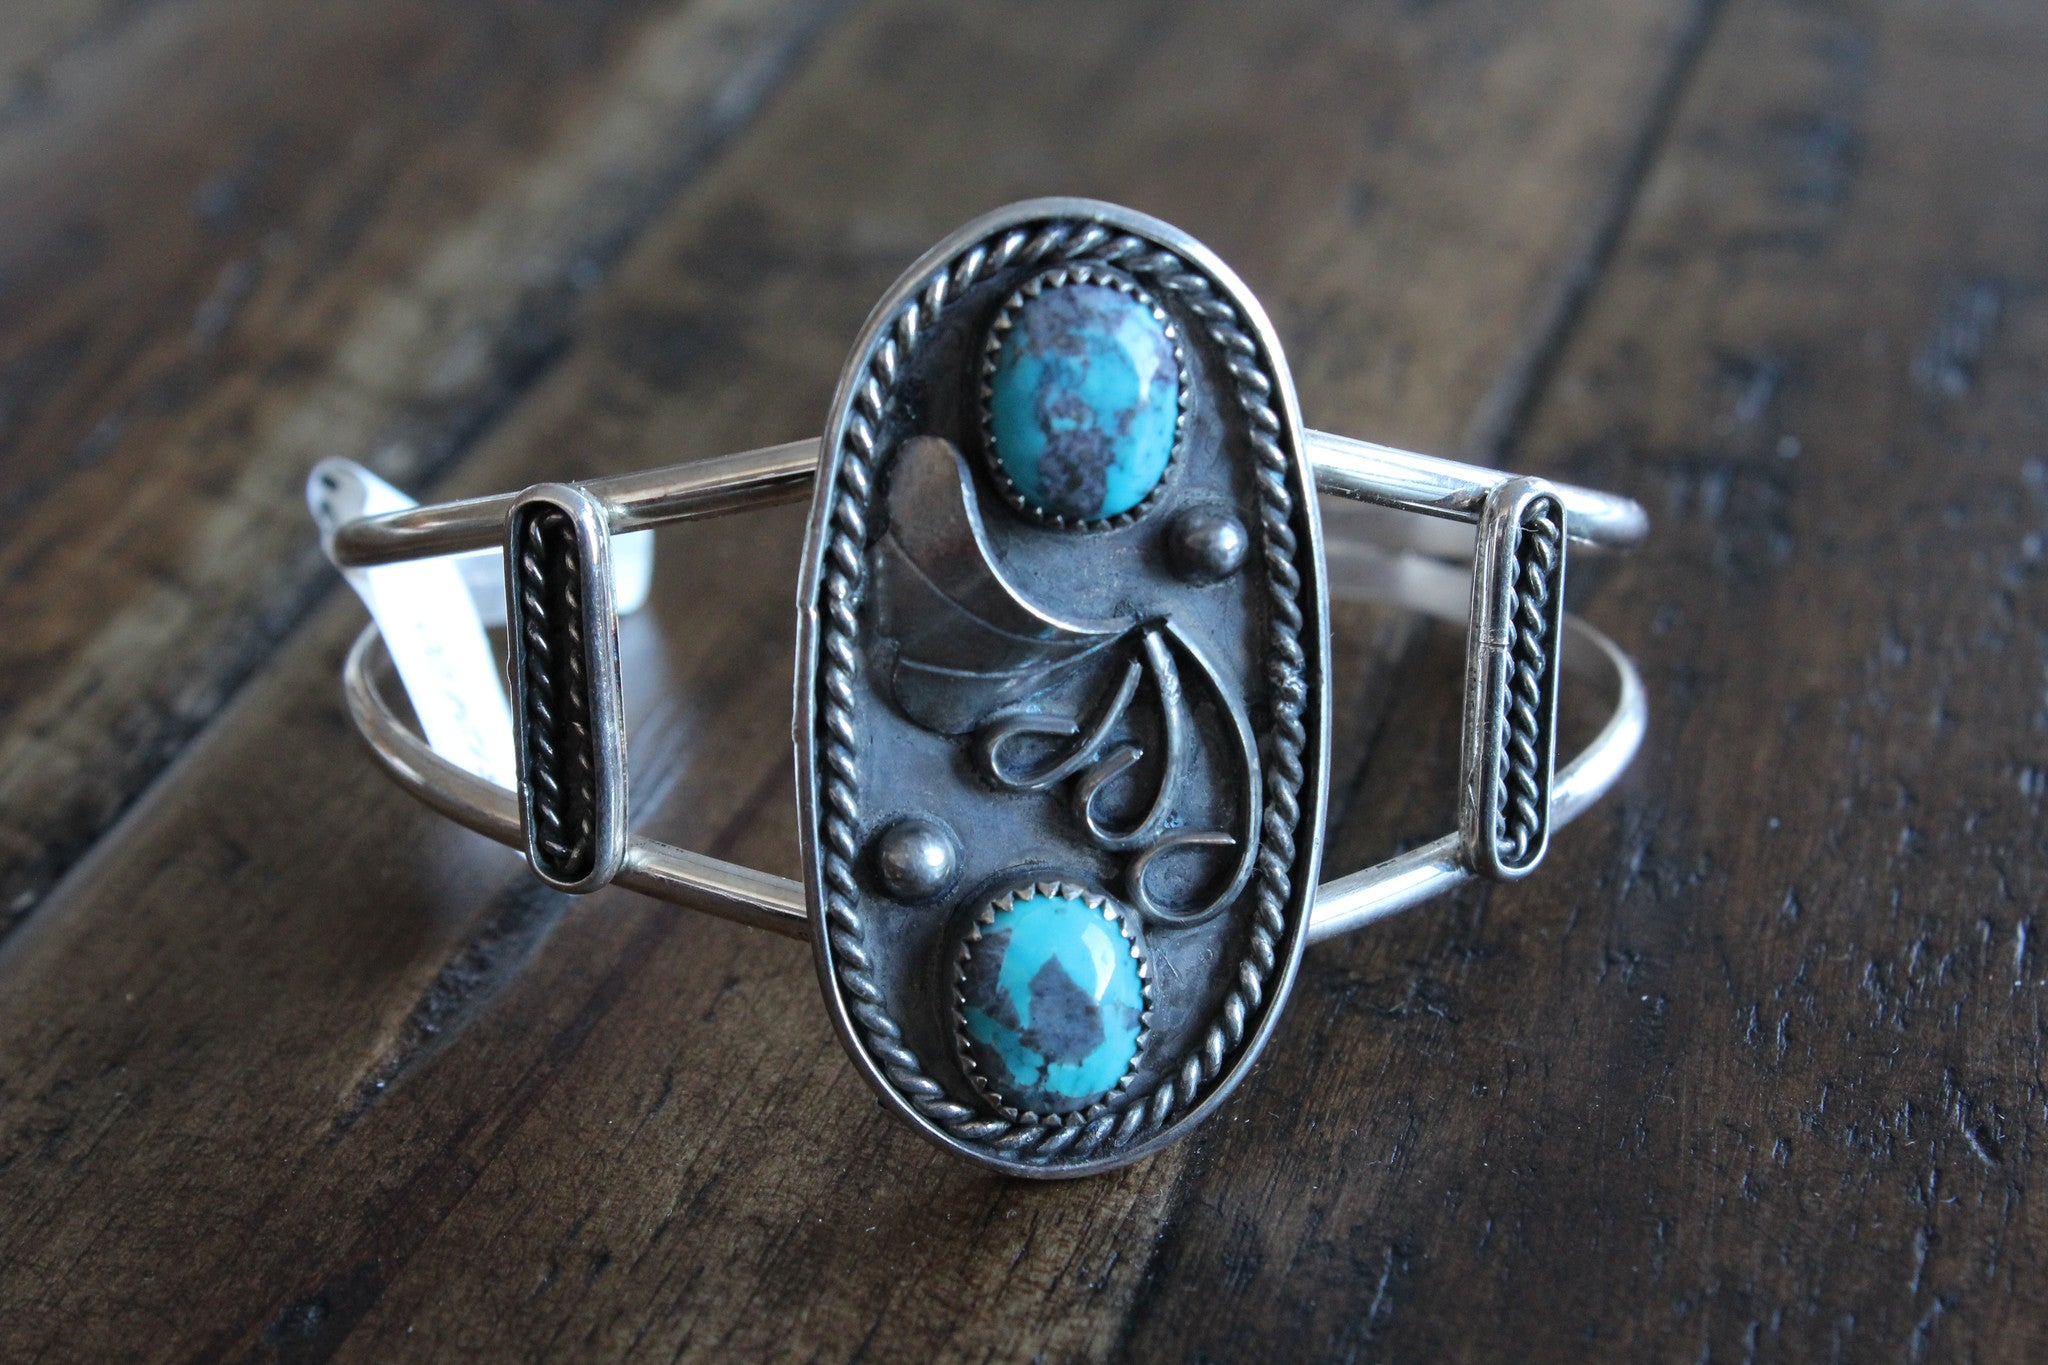 jewelry gypsy american boho bangles navajo shopping native bohemian turquoise ethnic in item from india online cuff femmes bangle bracelet